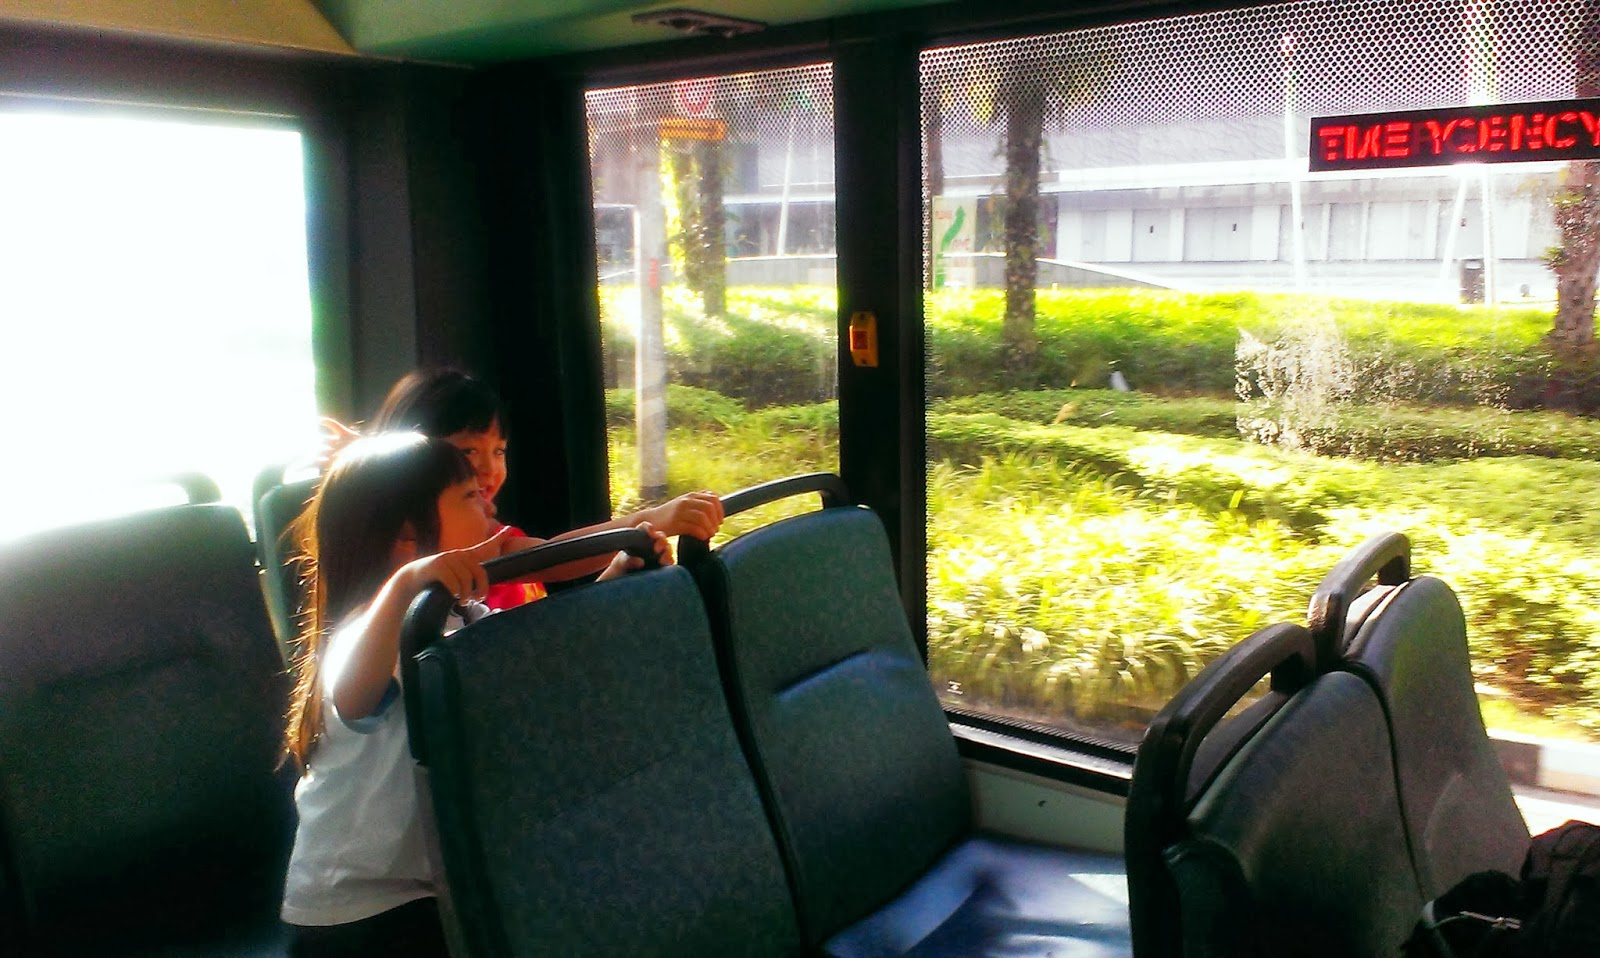 With Kids We Go Adventure Cove Waterpark Daddys Day Out Singapore Et Tiket Park Had The Shuttle Bus All To Ourselves